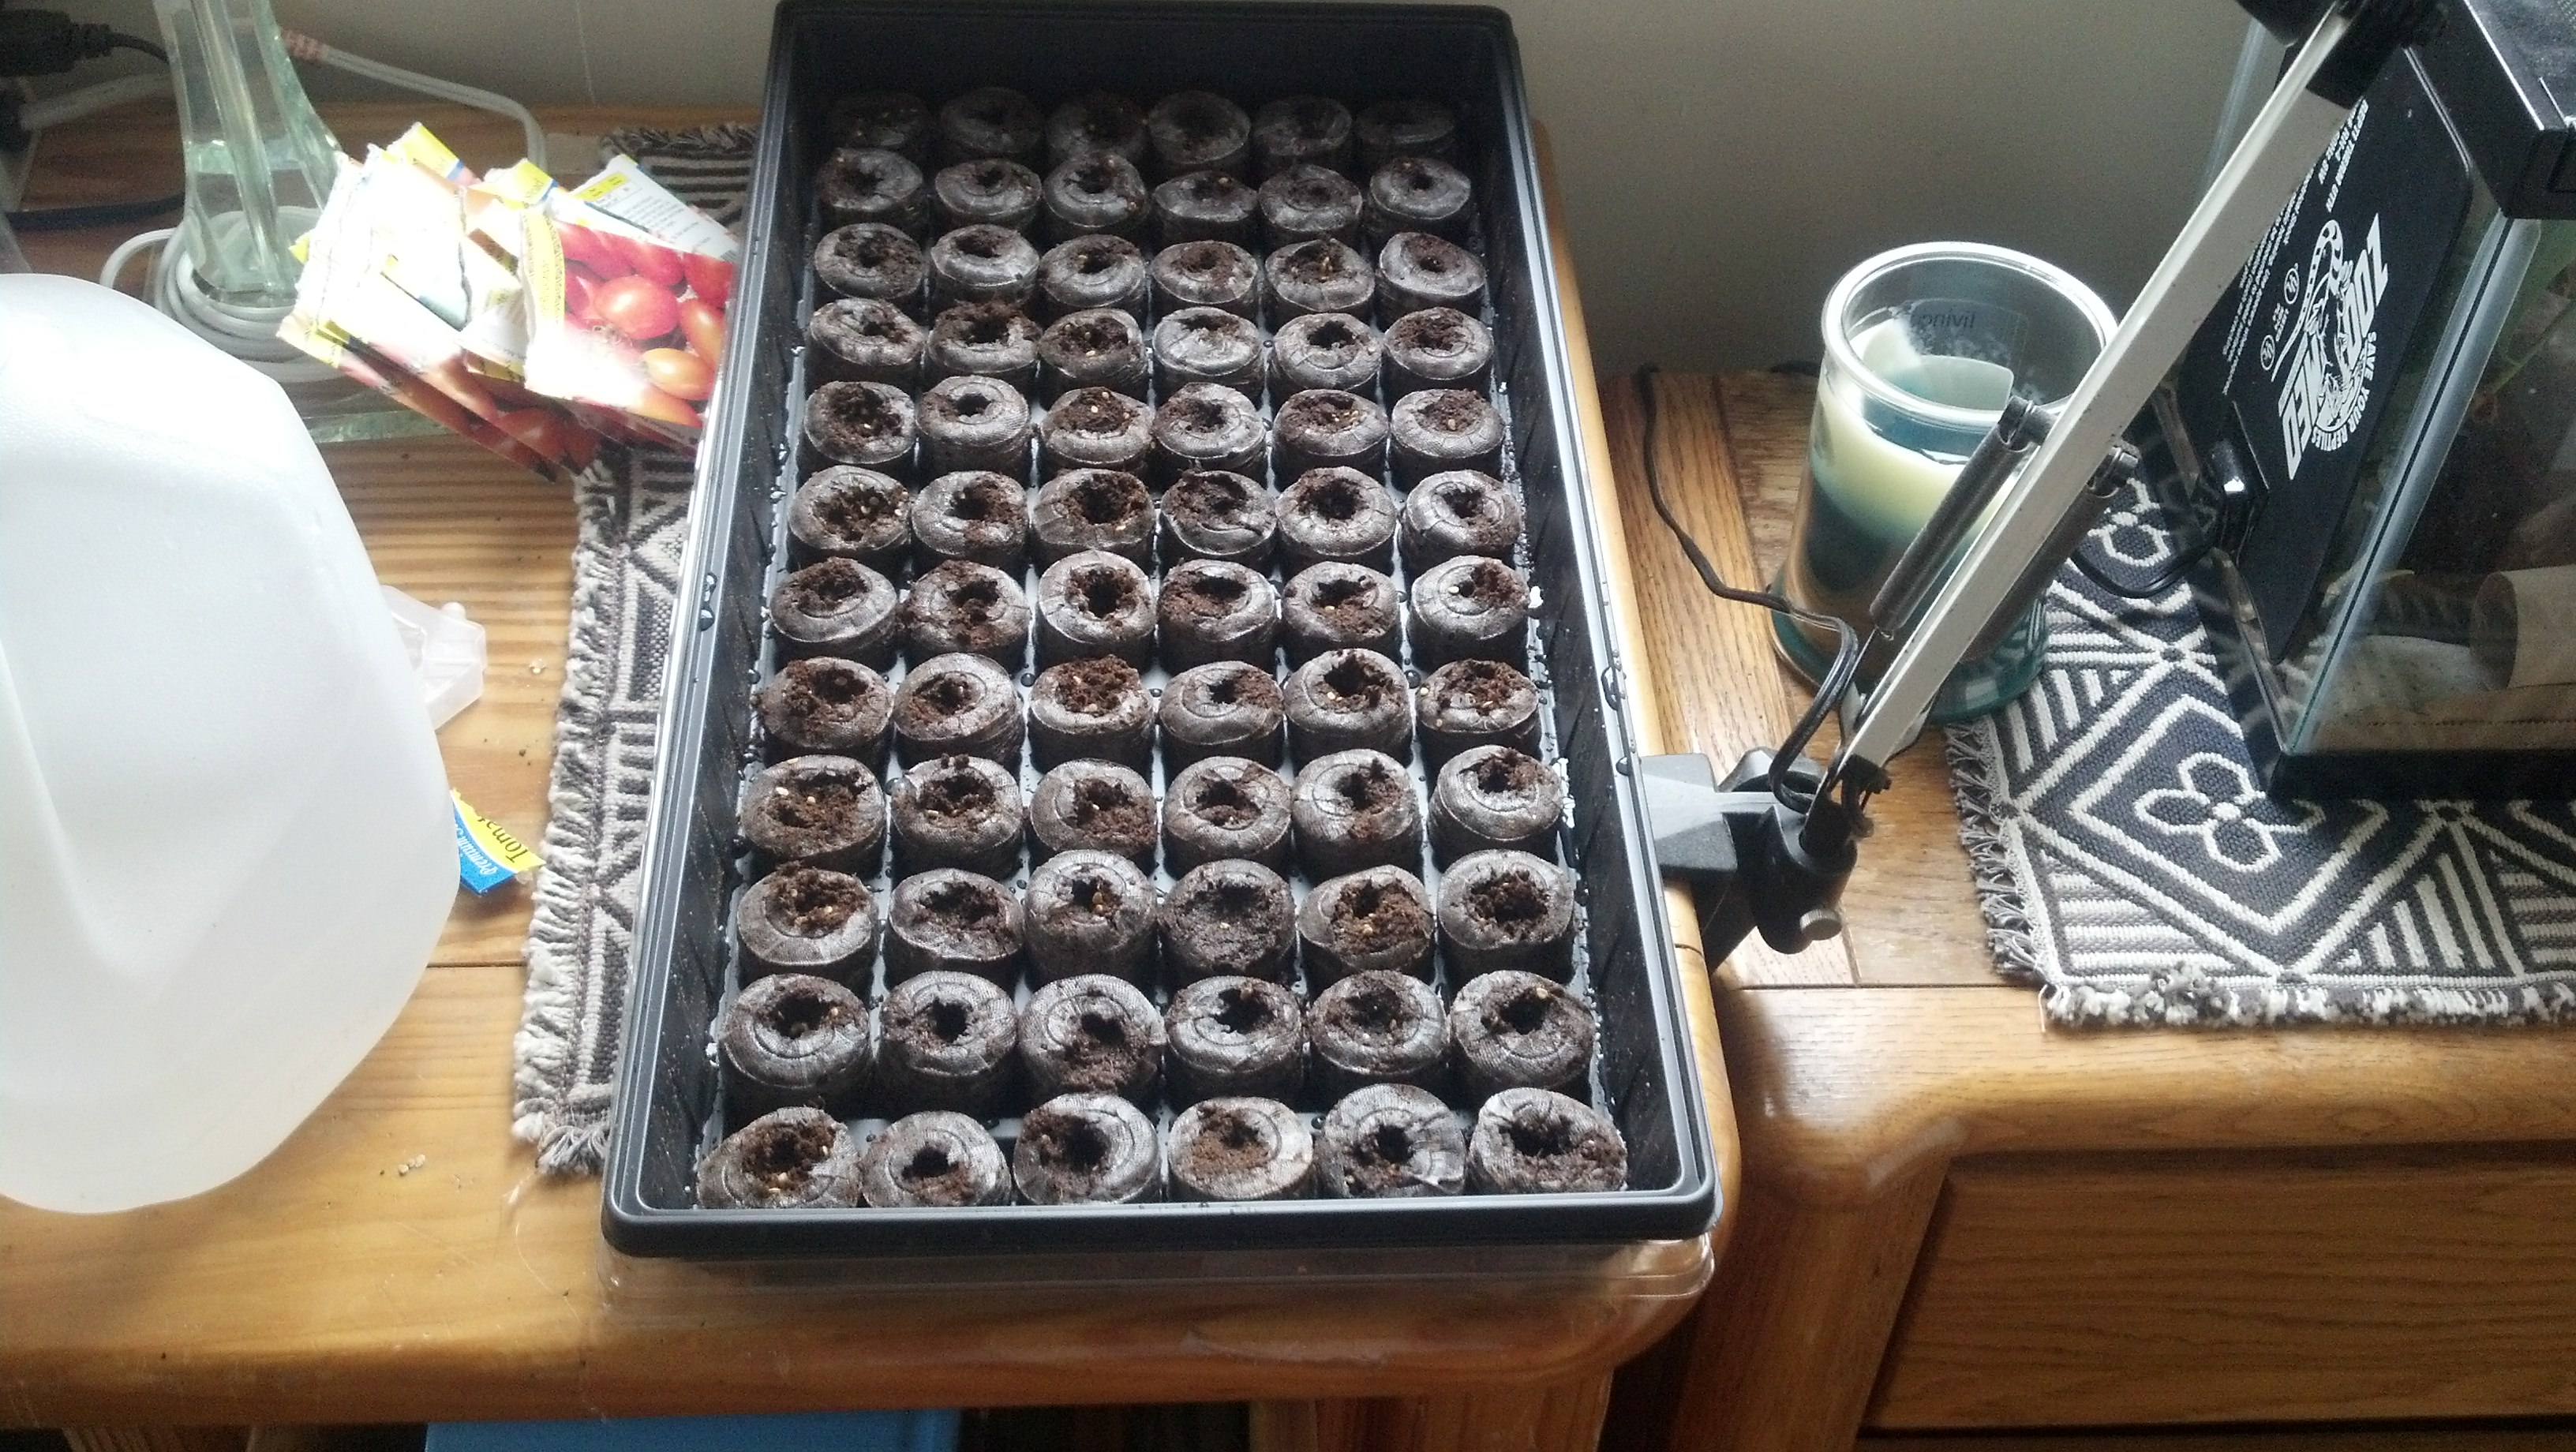 Here are all 72 pucks water and populated. With well over 100 seeds planted.